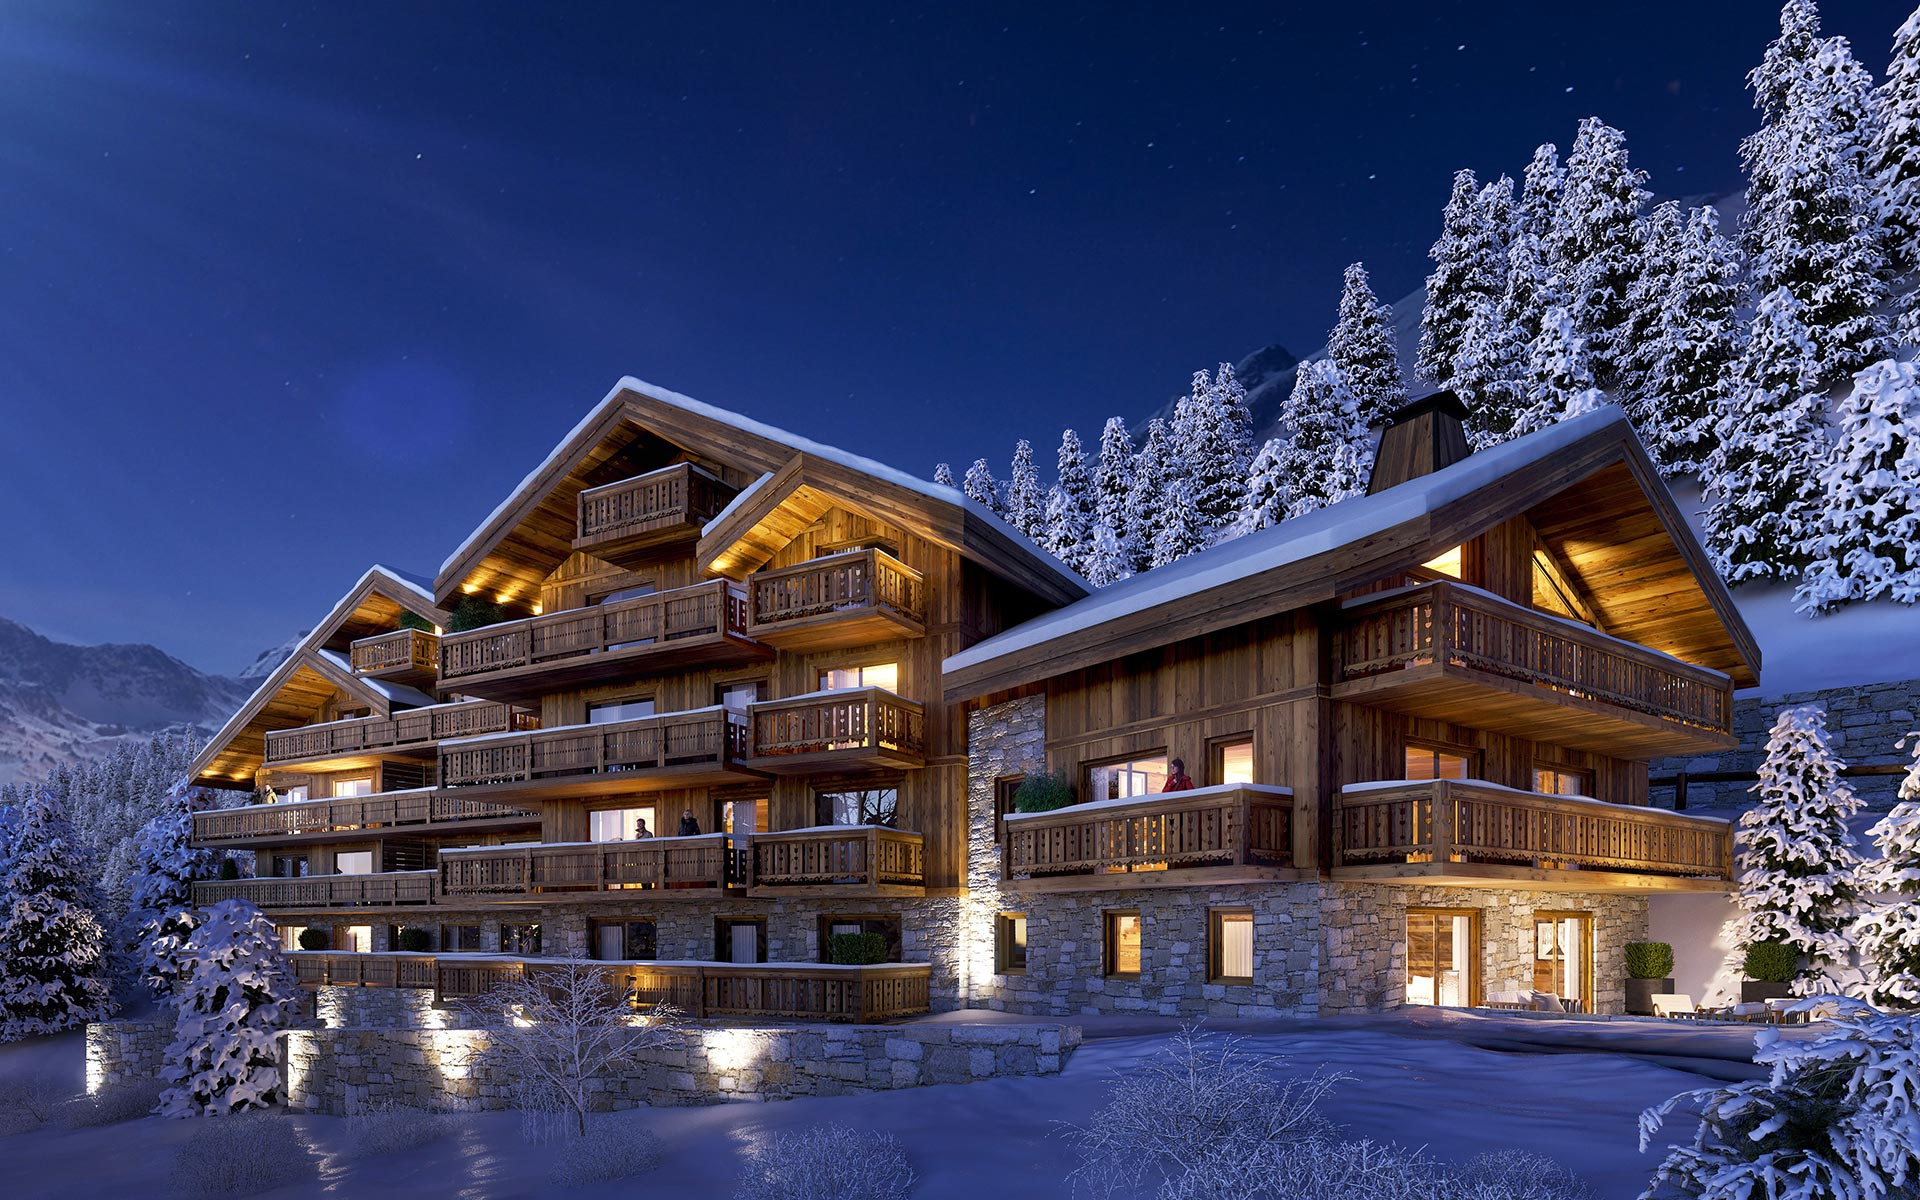 3D visualization of a Chalet - News Valentinstudio